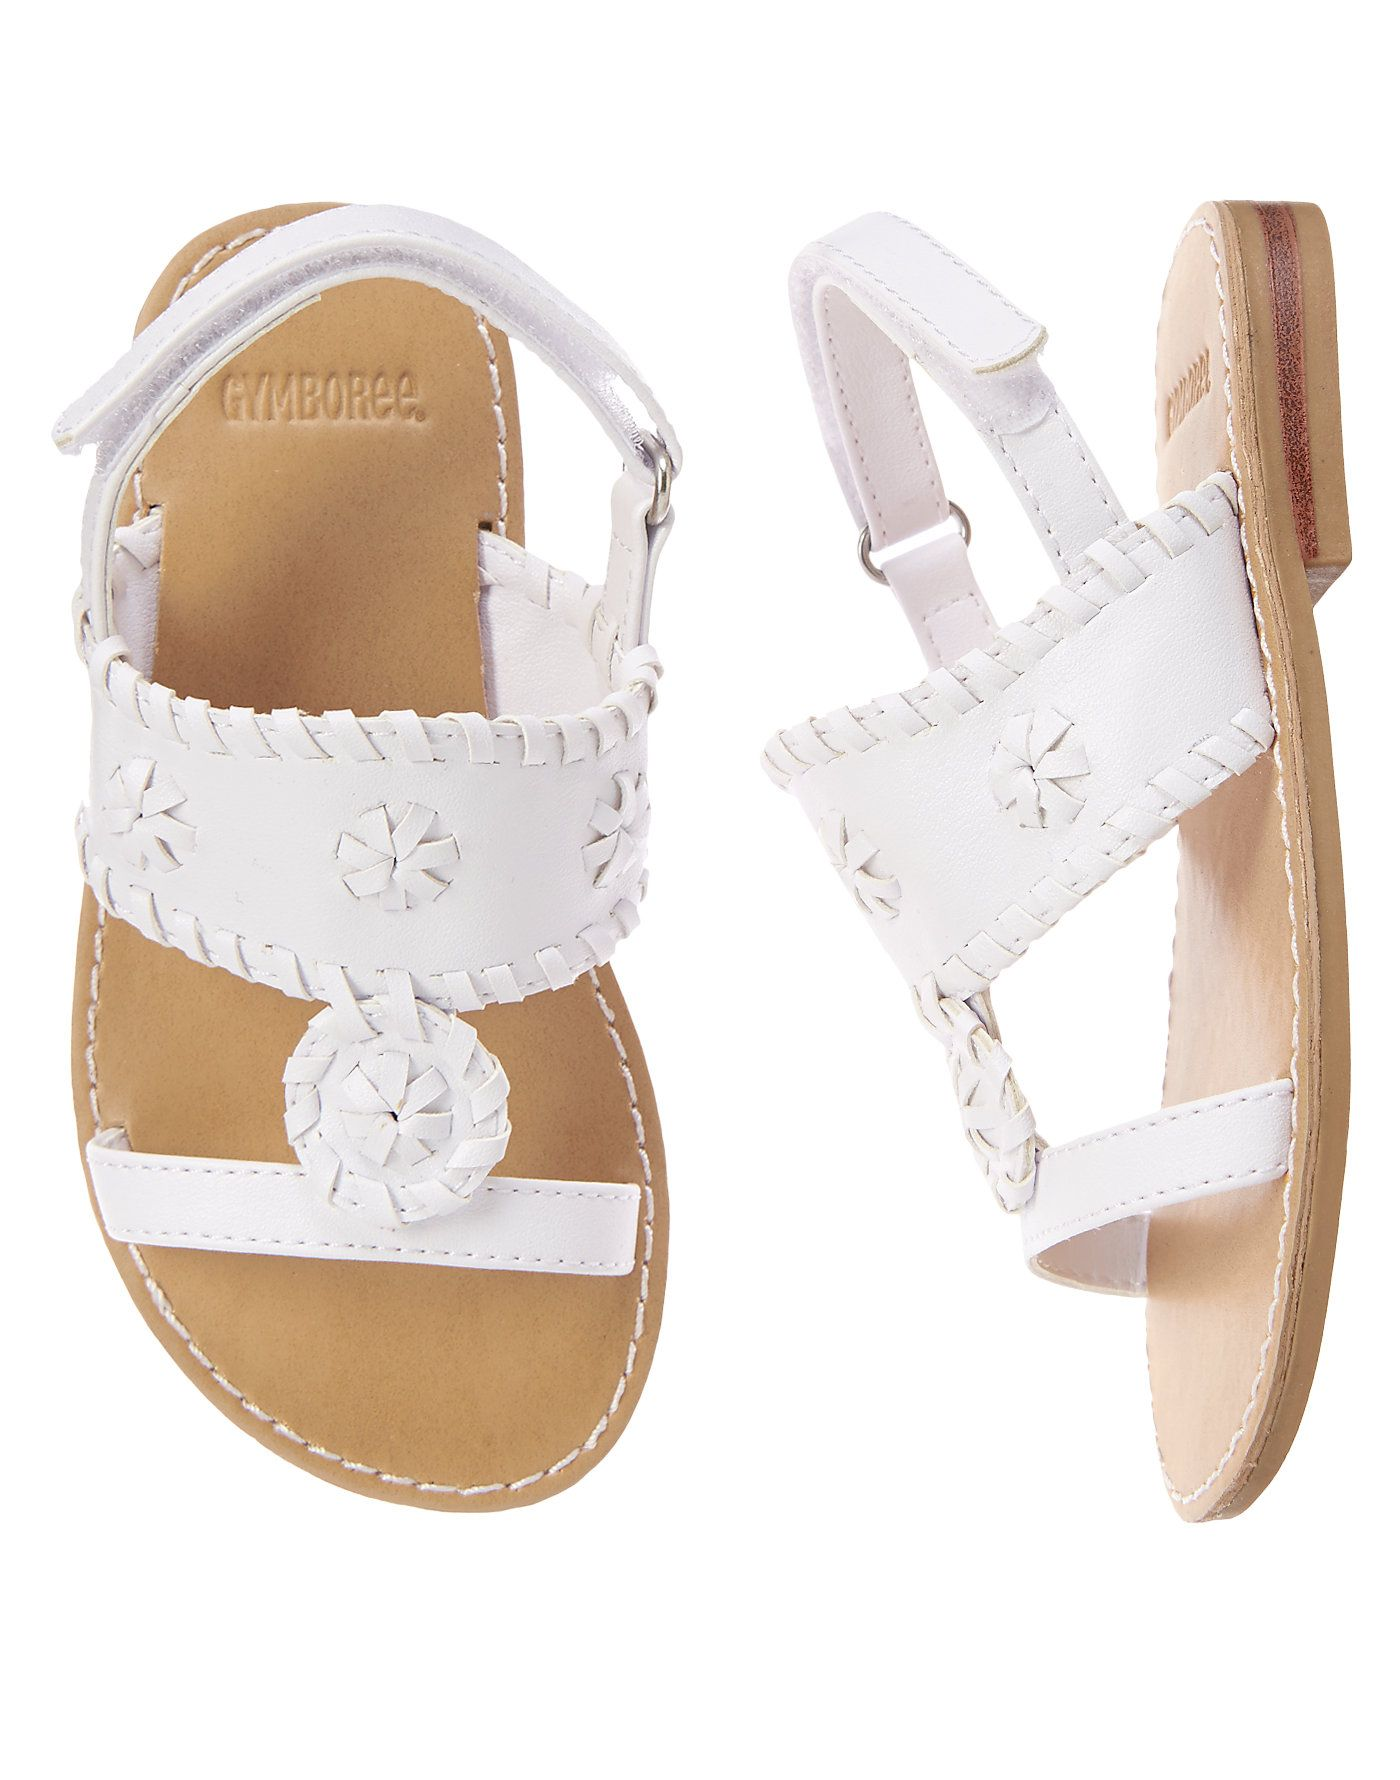 Cute baby shoes, Baby girl clothes